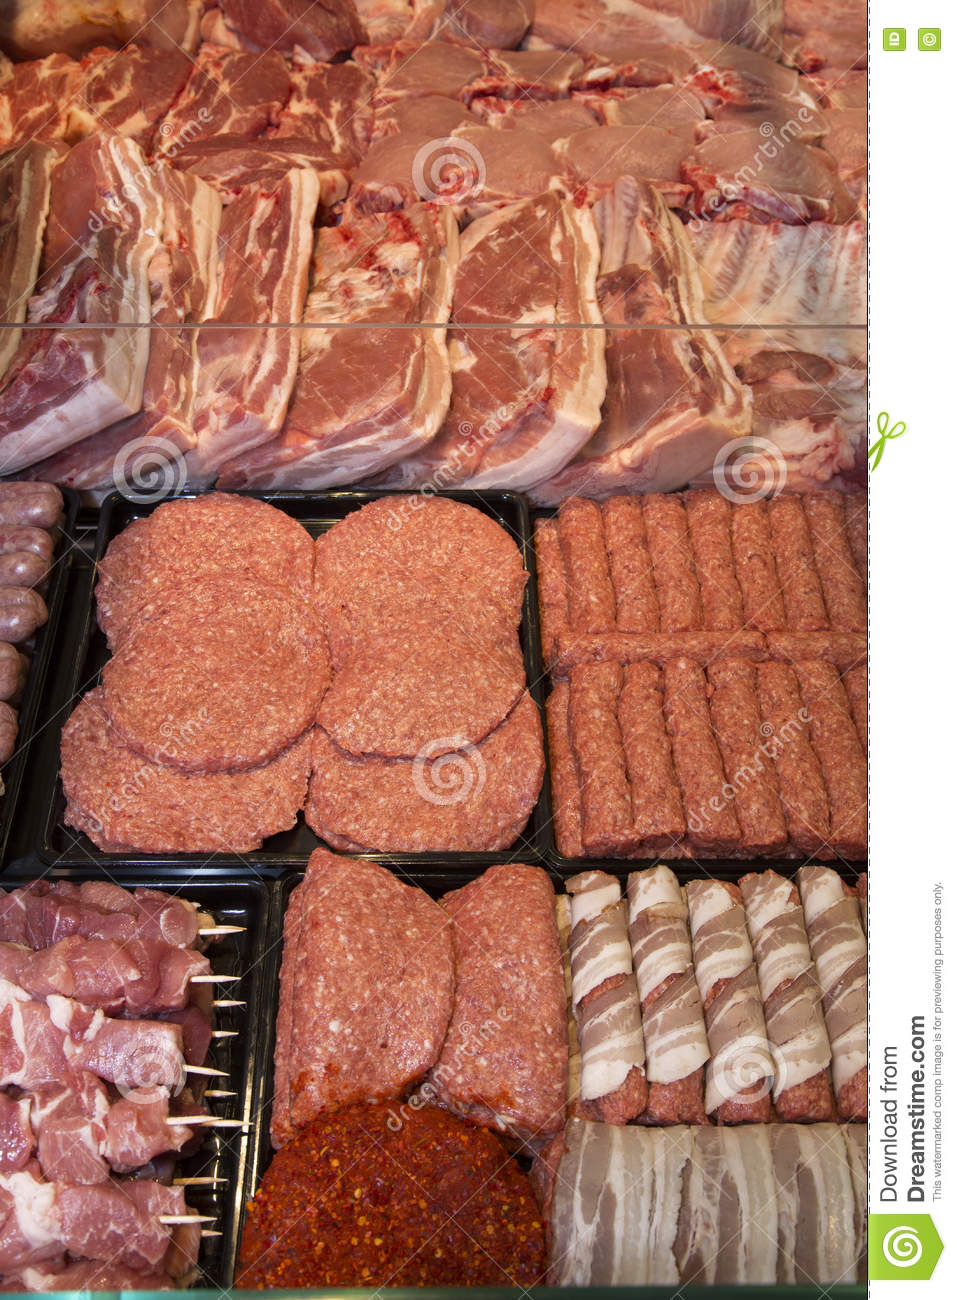 Variety Of Raw Meat - Kebabs Of Minced Meat, Beef Patties, Pork Skewers,Kebabs Wrapped In Bacon, Sausages At The Market Place